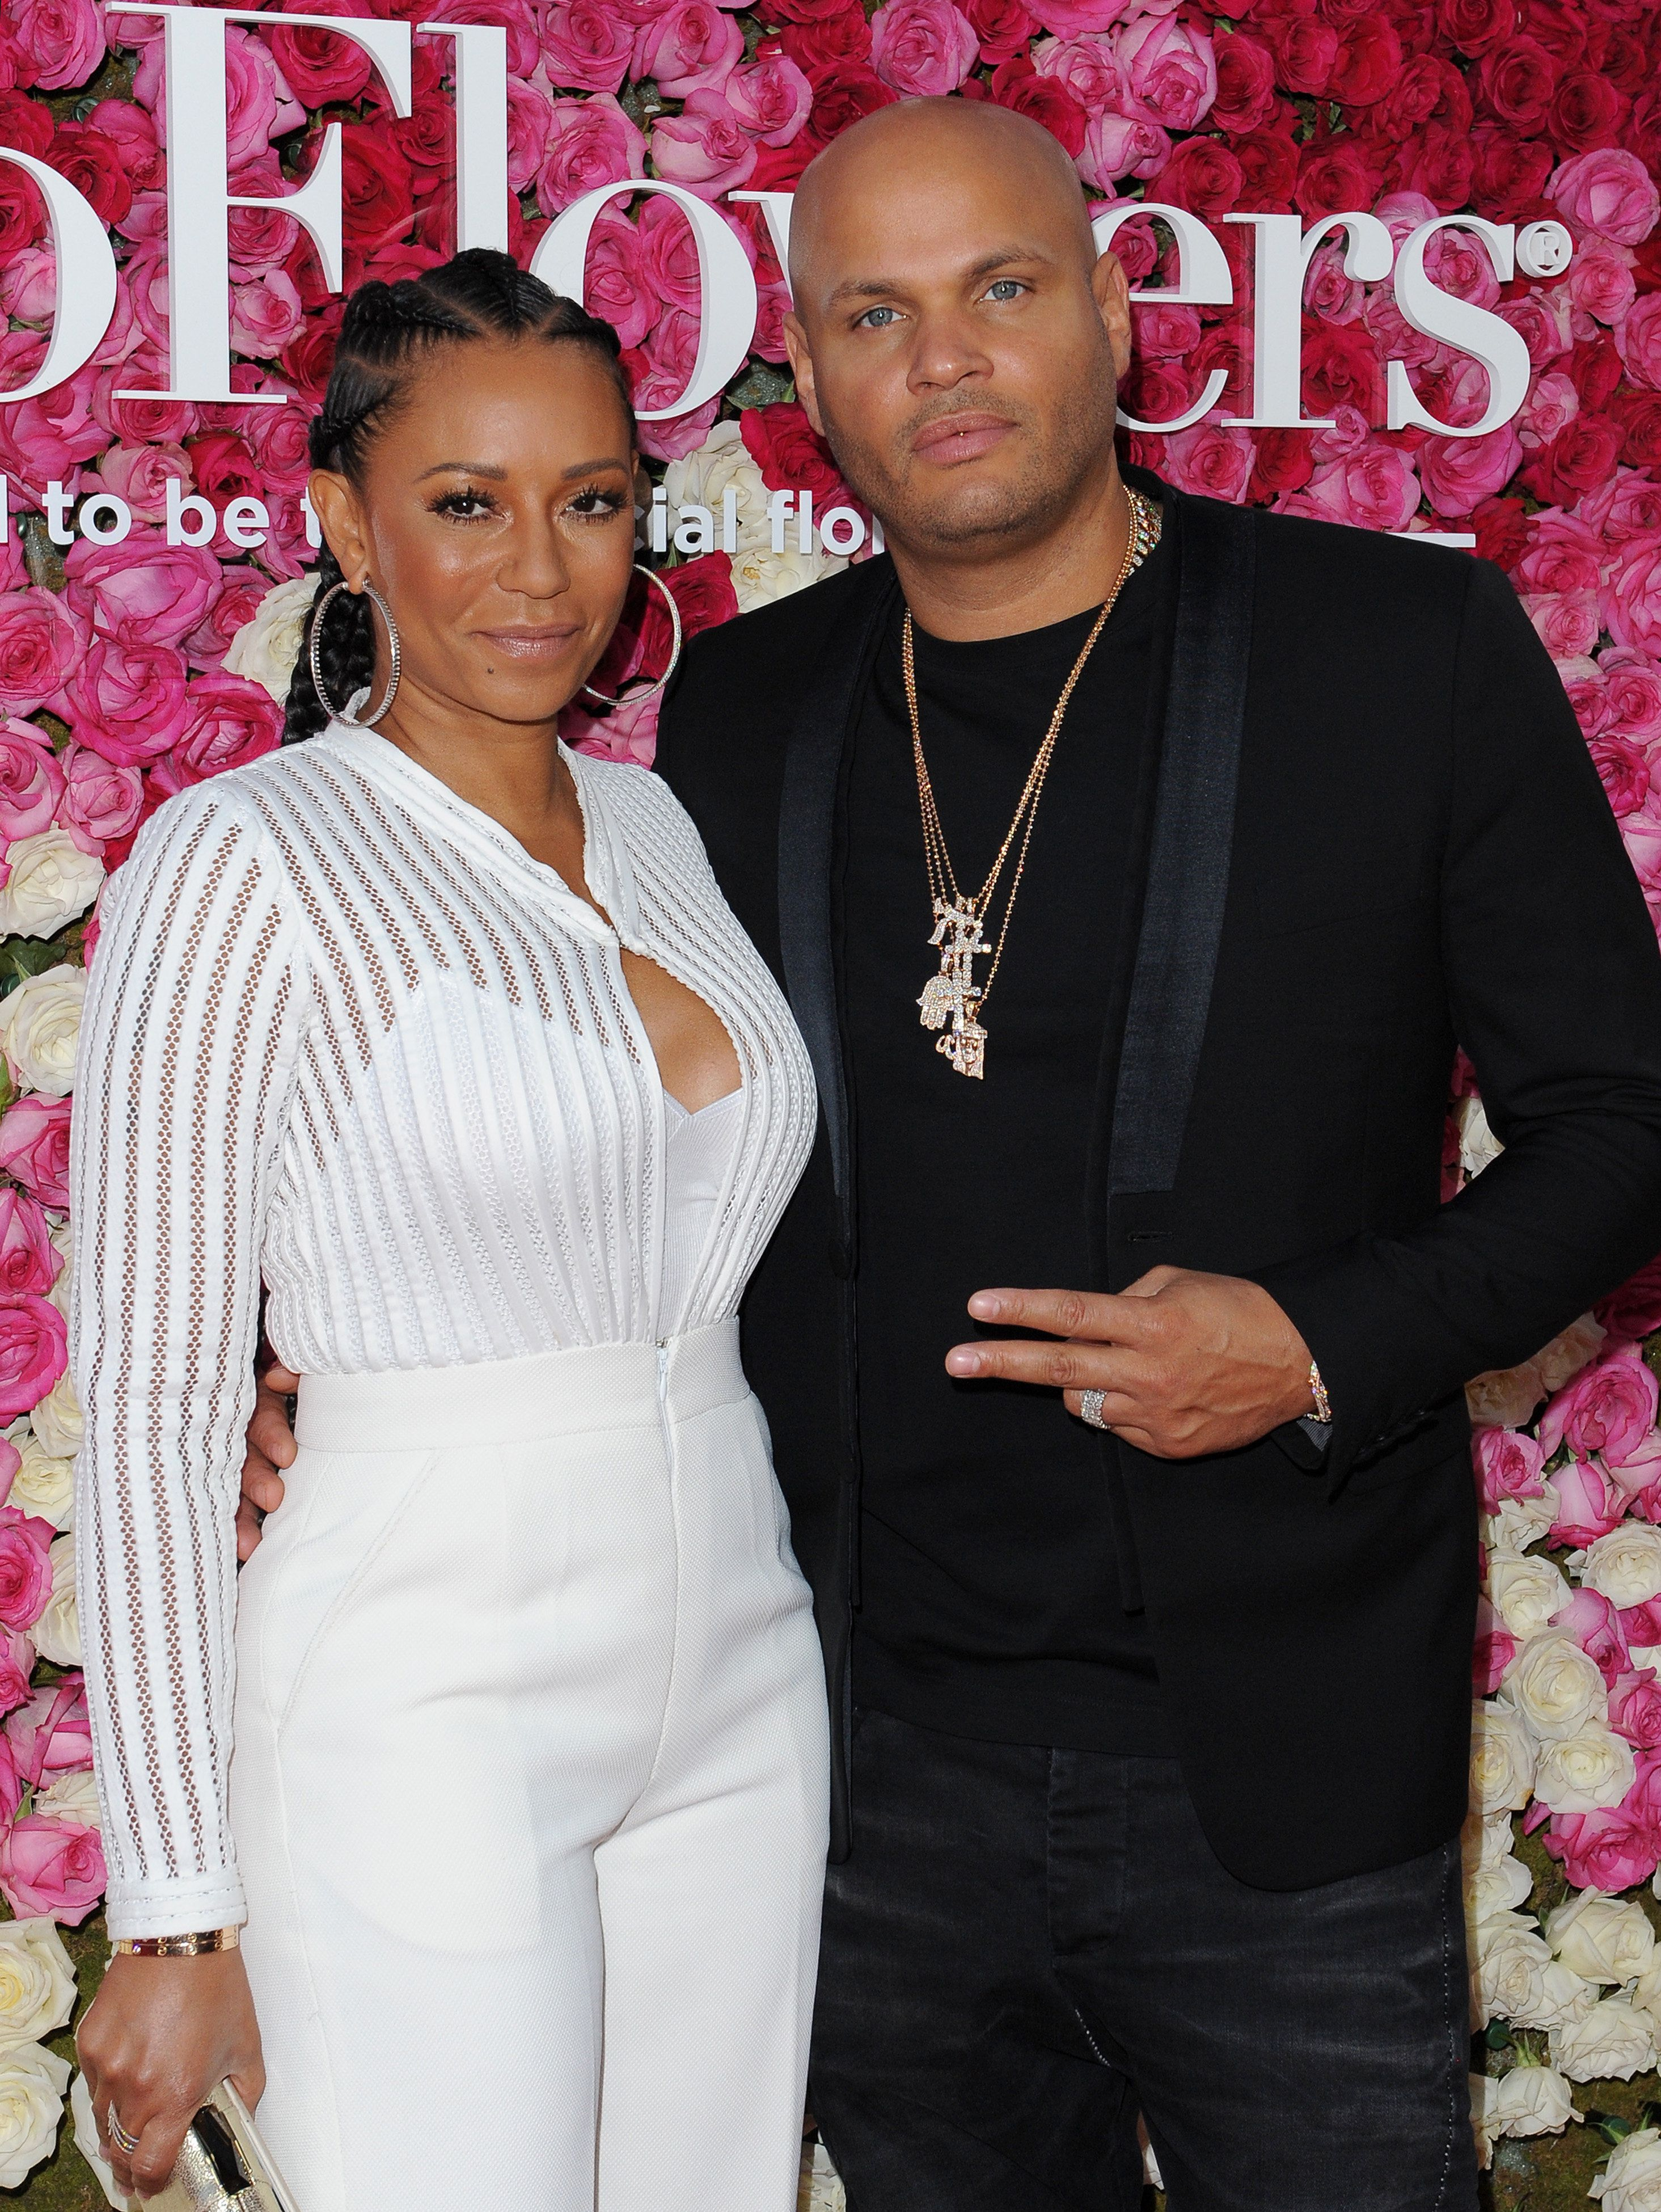 Mel B Ordered to Pay Stephen Belafonte's £270,000 Legal Fees As Divorce Is